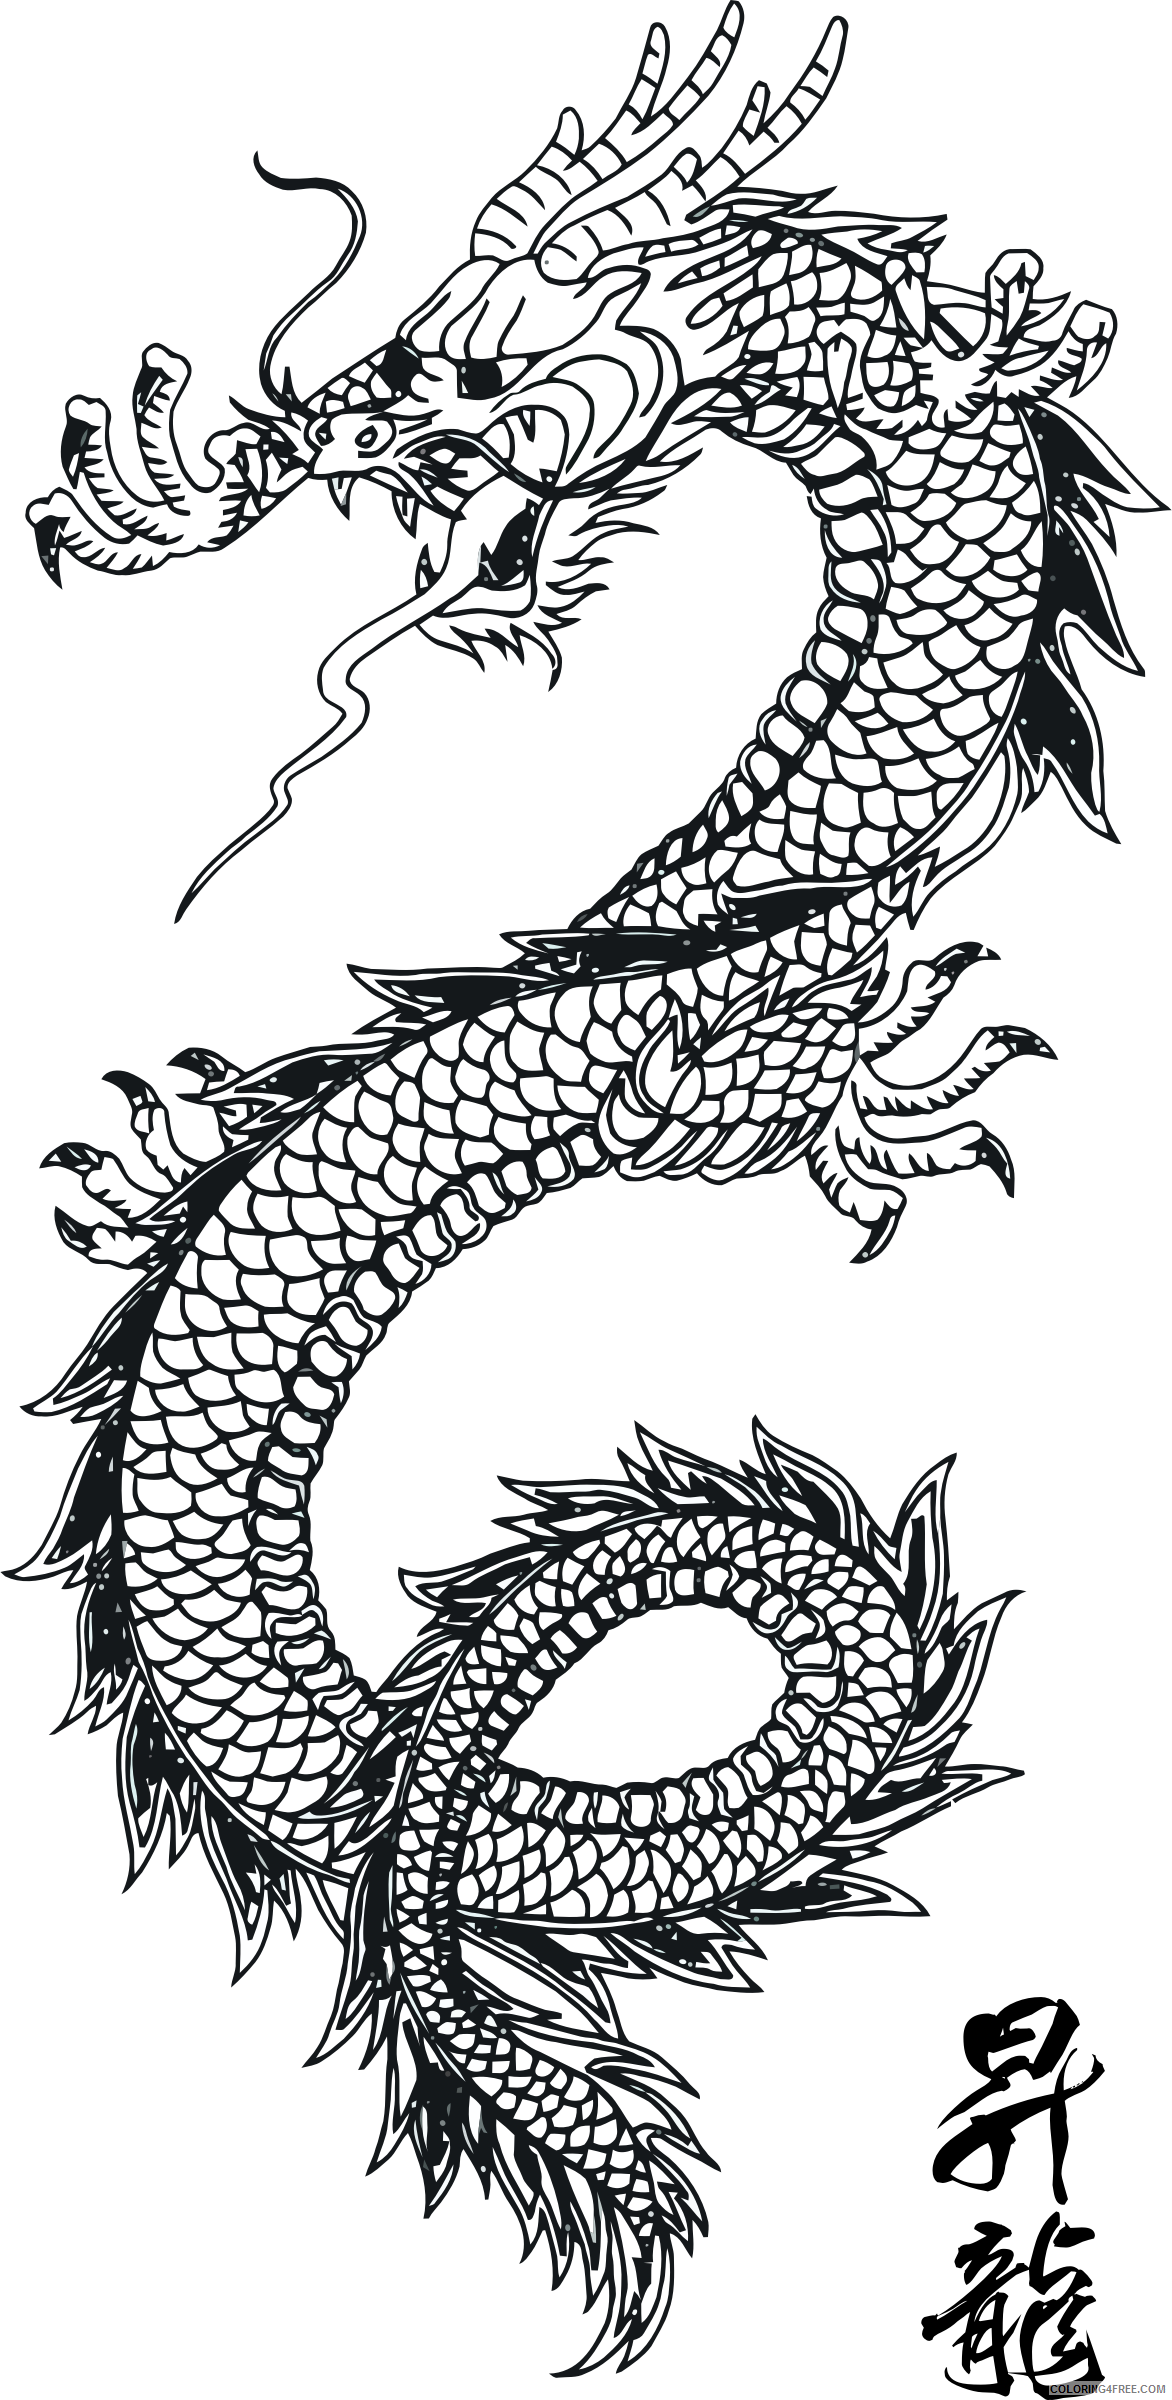 Black And White Dragon Coloring Pages Samuraiagency Dragon Vector Art 1 Printable Coloring4free Coloring4free Com